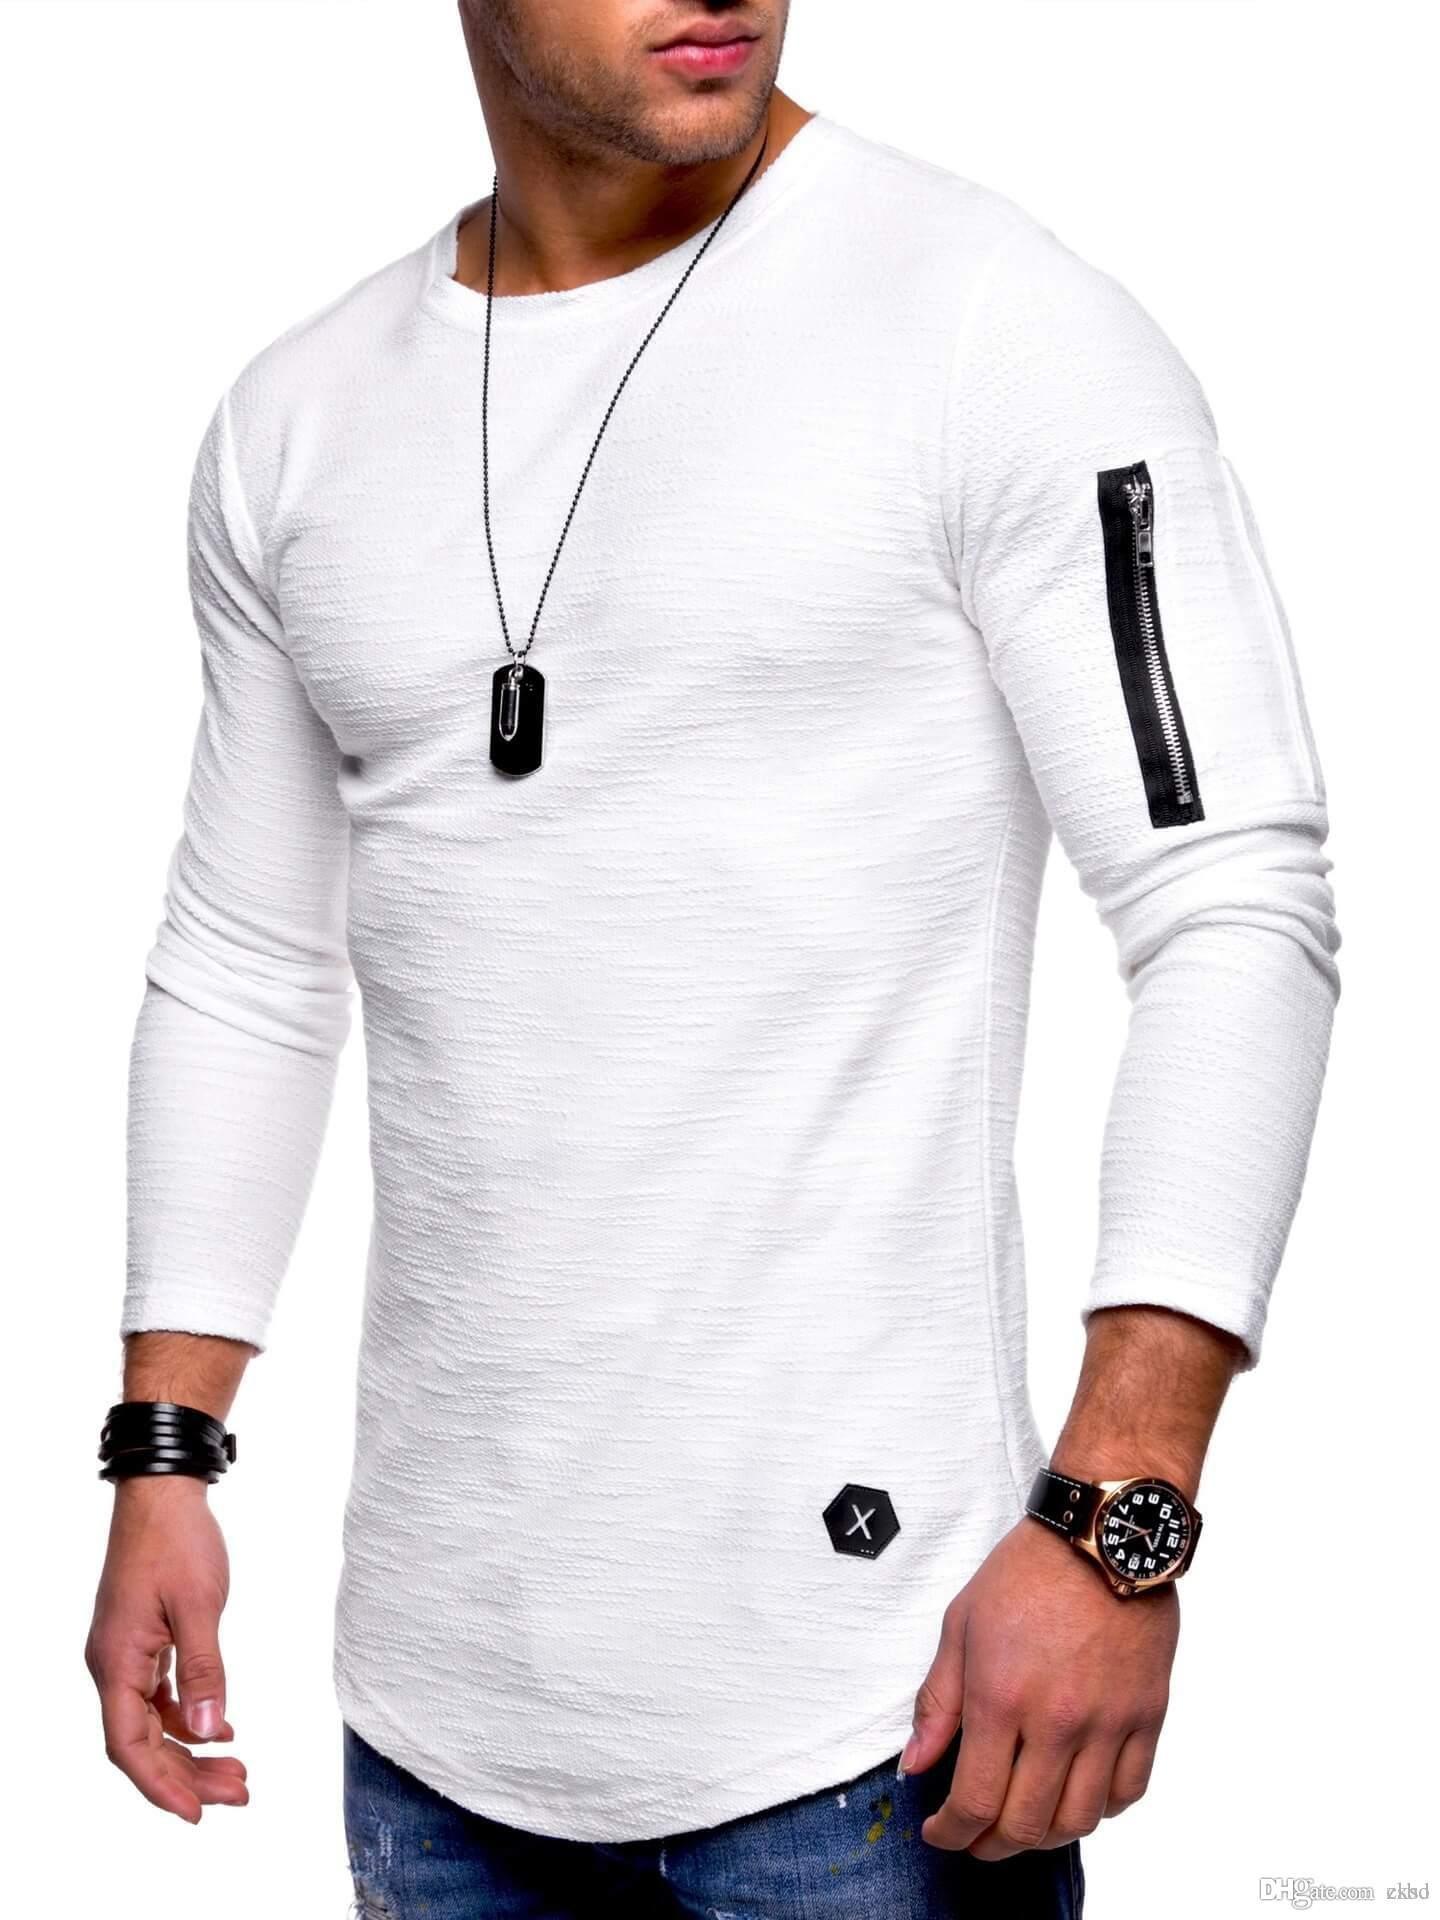 443beeb80b5d 2019 2018 Fashion Men S Solid Color Round Neck Long Sleeved T Shirt Arm  Zipper Stitching Personality European And American Style T Shirt WGW From  Cksd